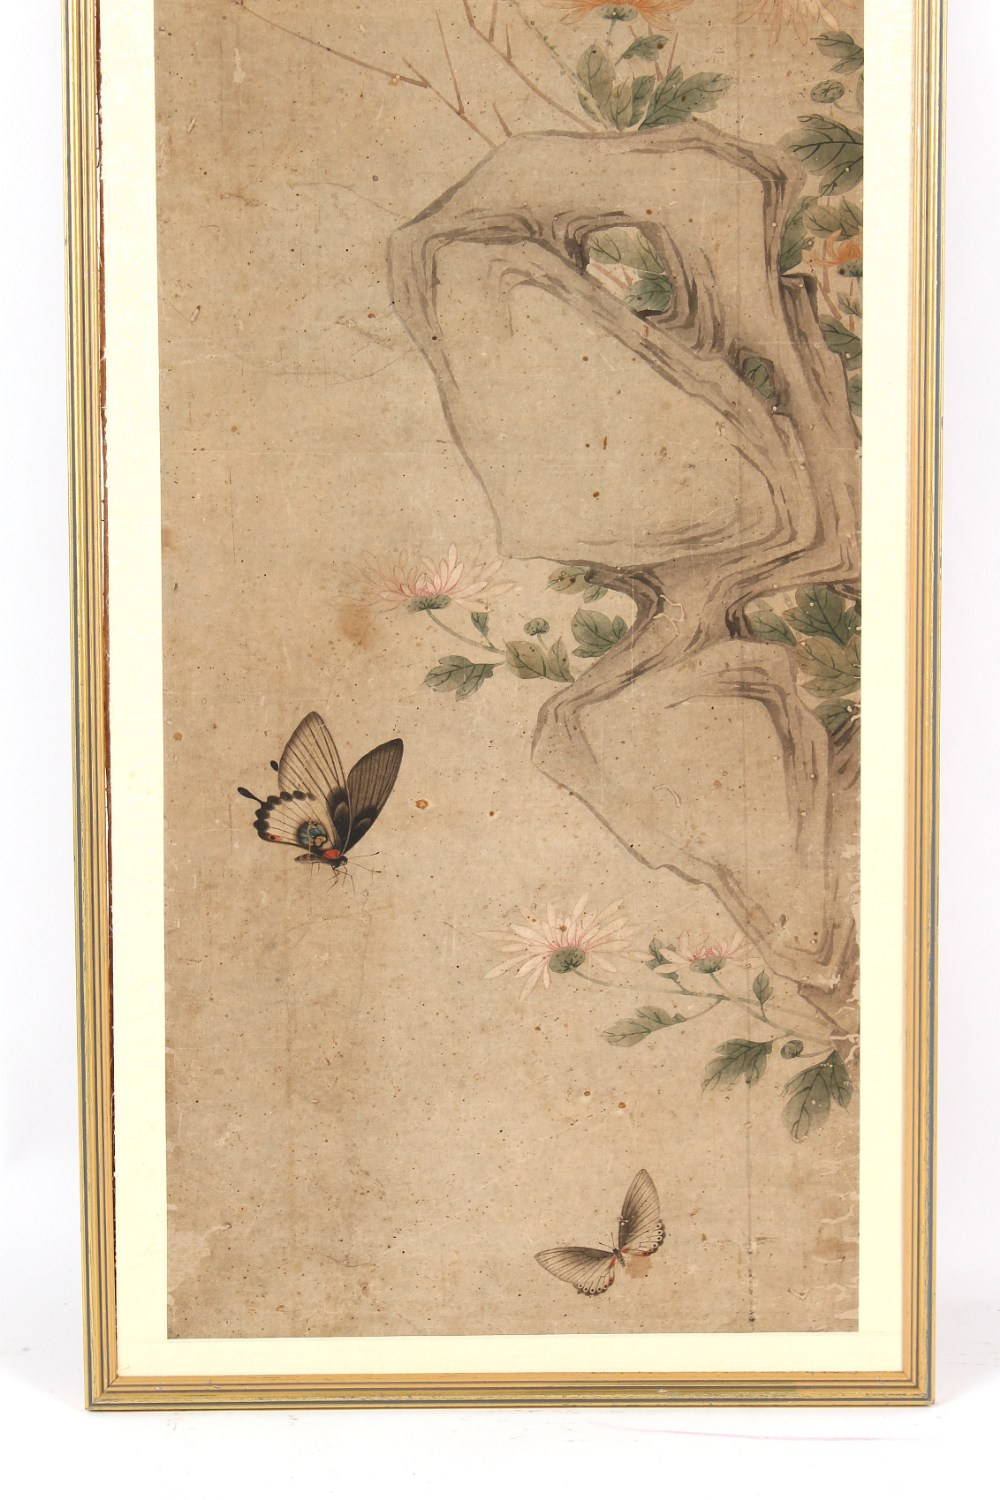 Property of a gentleman - a Chinese painting on paper depicting butterflies among rocks & flowers, - Image 2 of 3